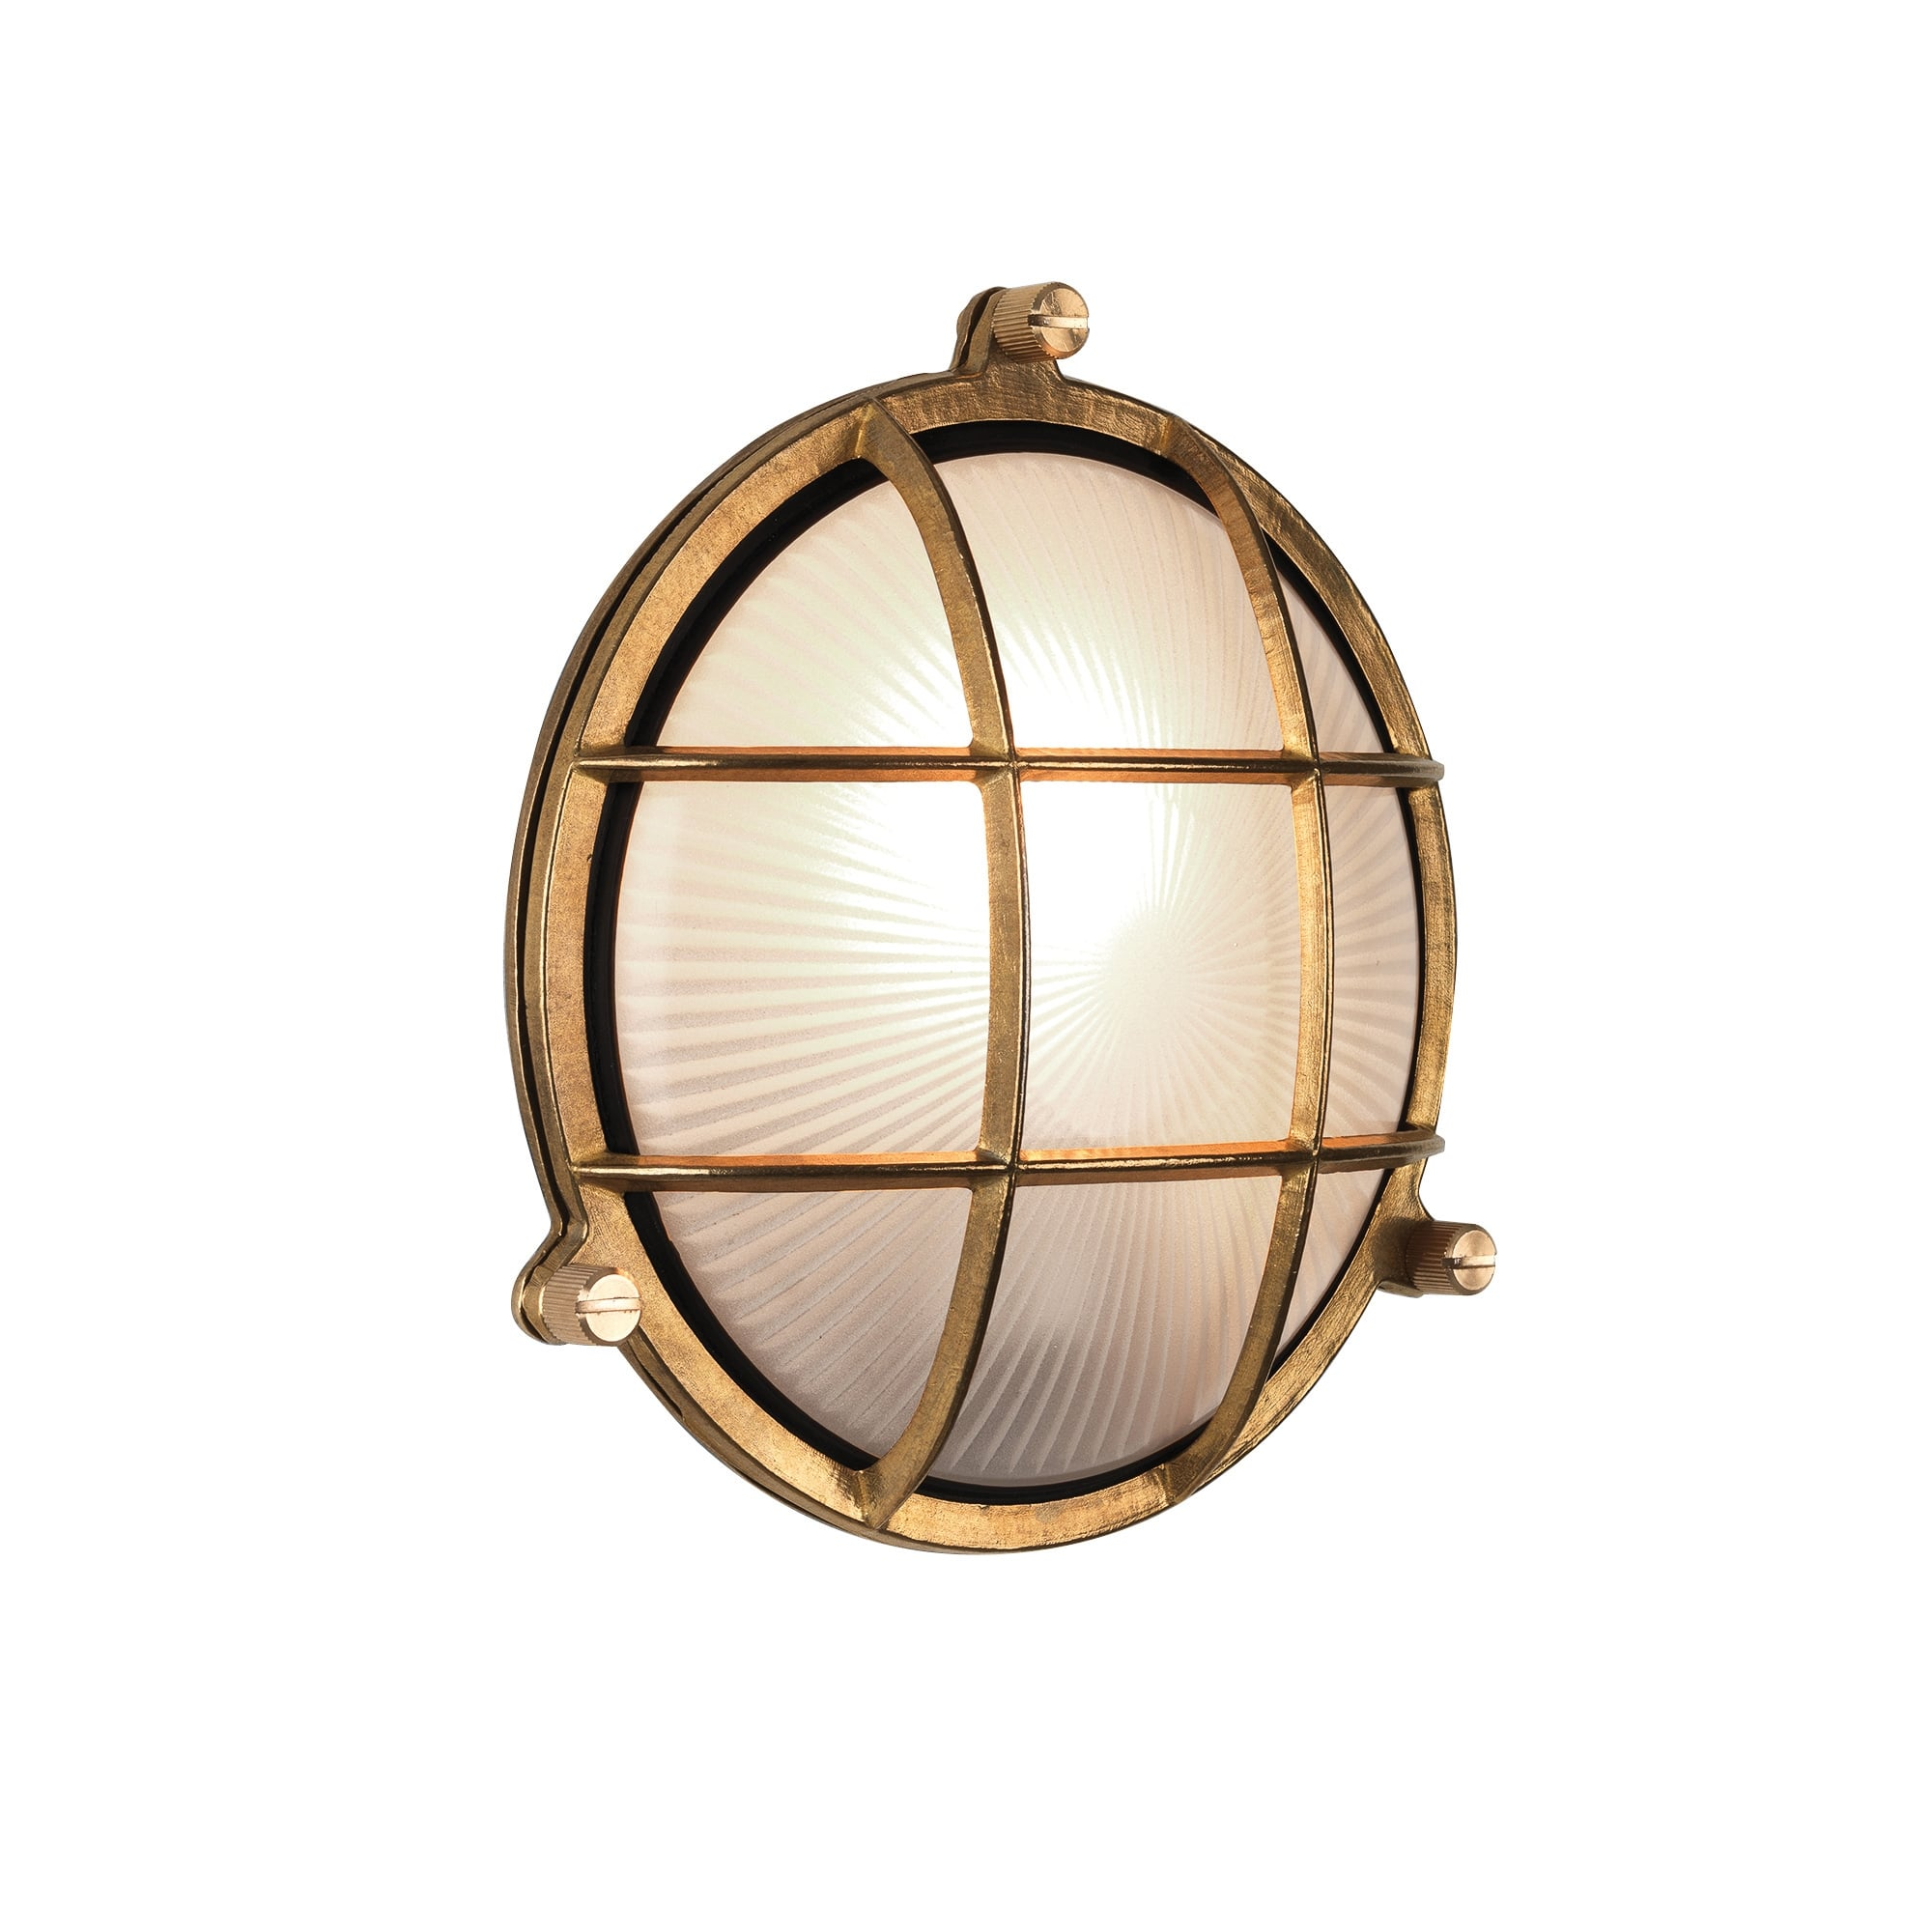 Circular Nautical Design Outdoor Wall Light Desgined For Harsh Weather